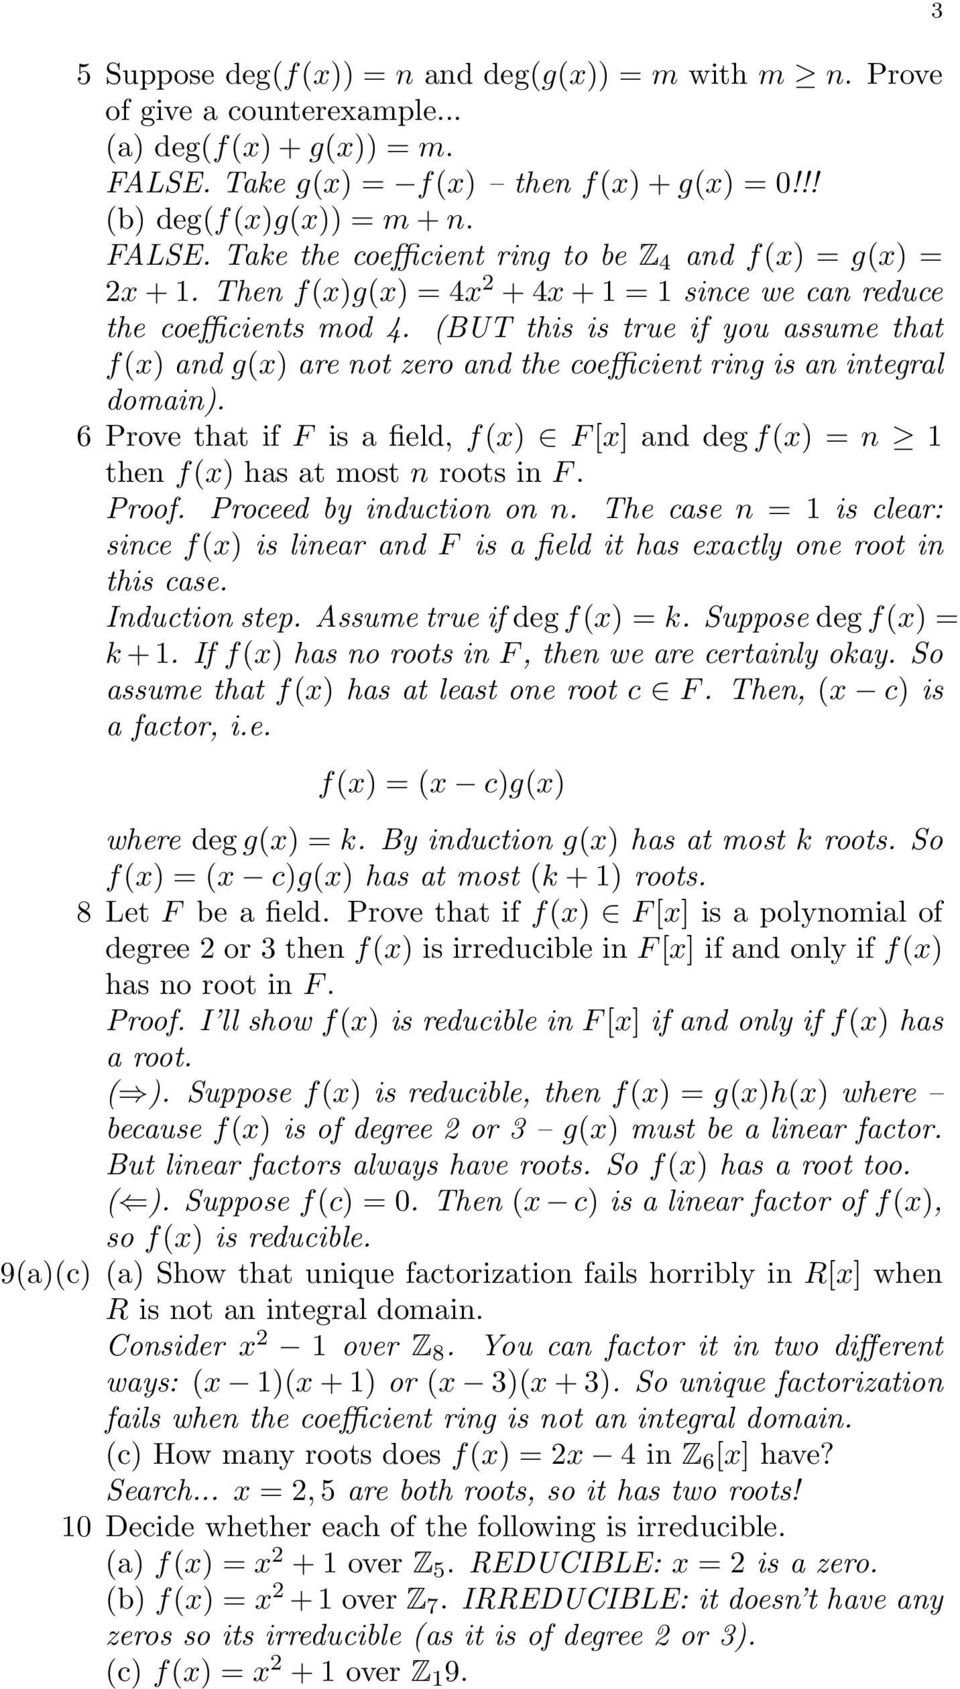 6 Prove that if F is a field, f(x) F [x] and deg f(x) = n 1 then f(x) has at most n roots in F. Proof. Proceed by induction on n.